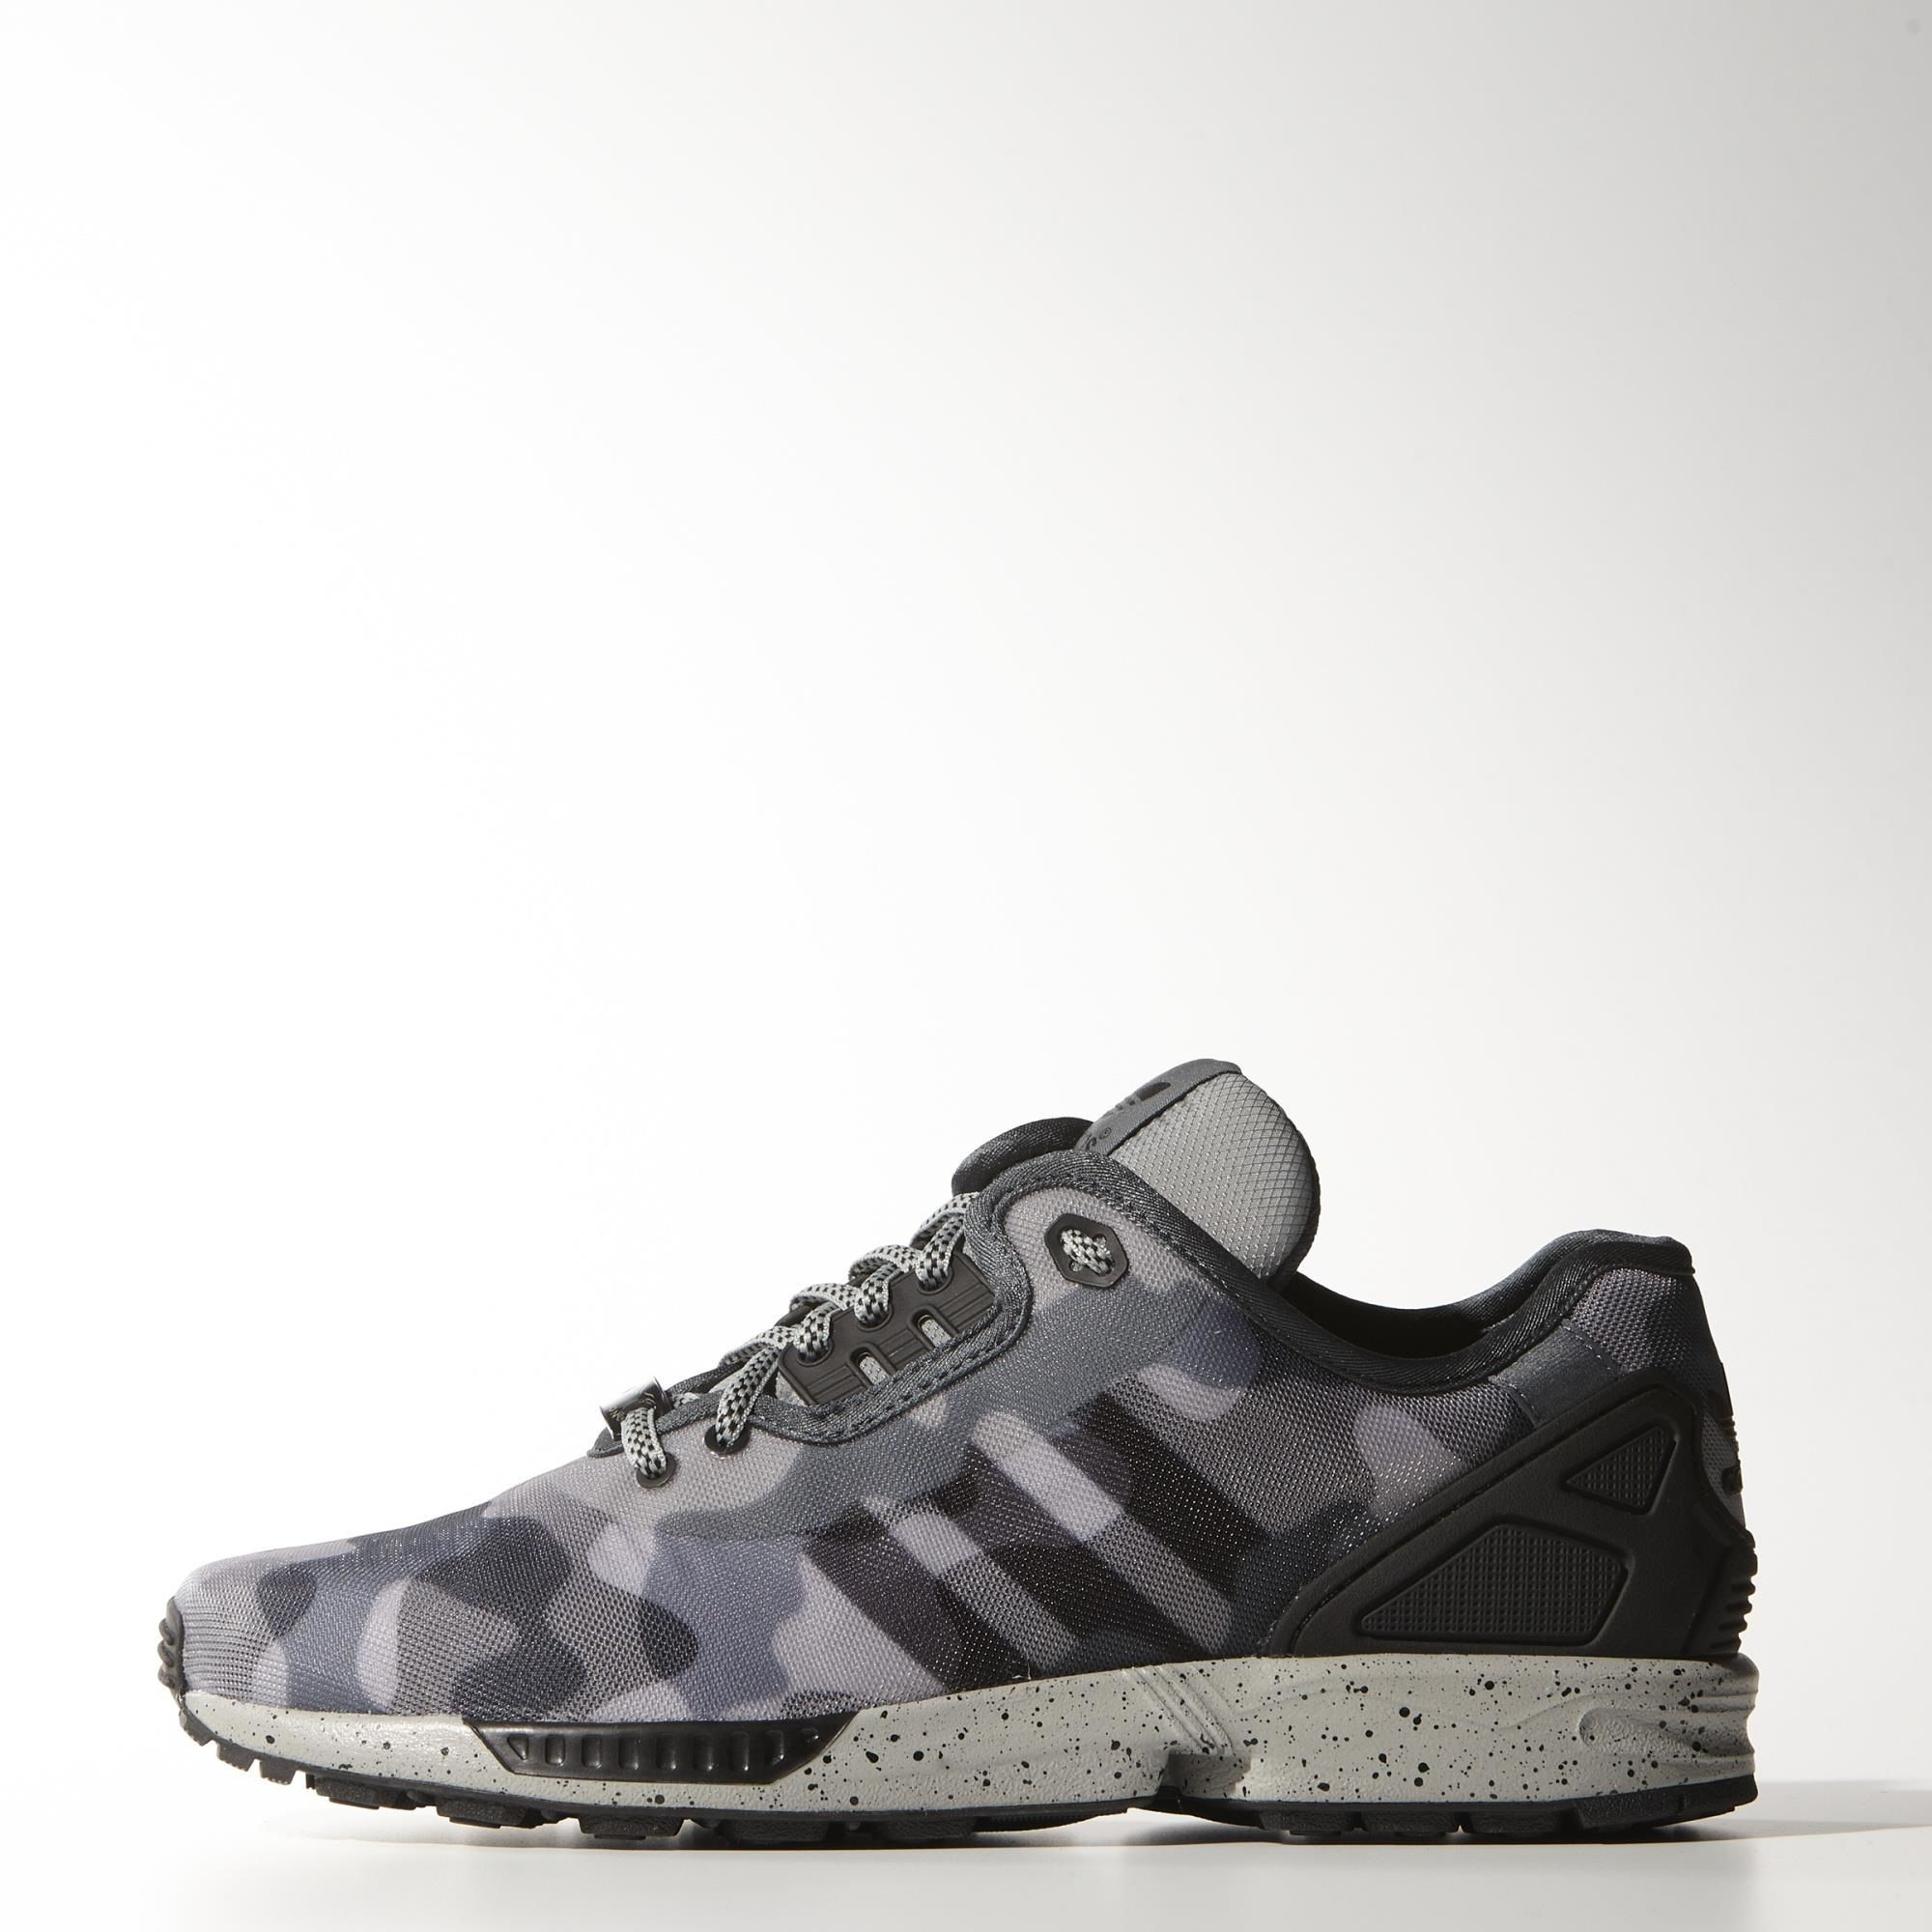 9d475fc813e adidas - ZX Flux Decon Shoes | Stuff to Buy | Adidas ZX, Adidas ...